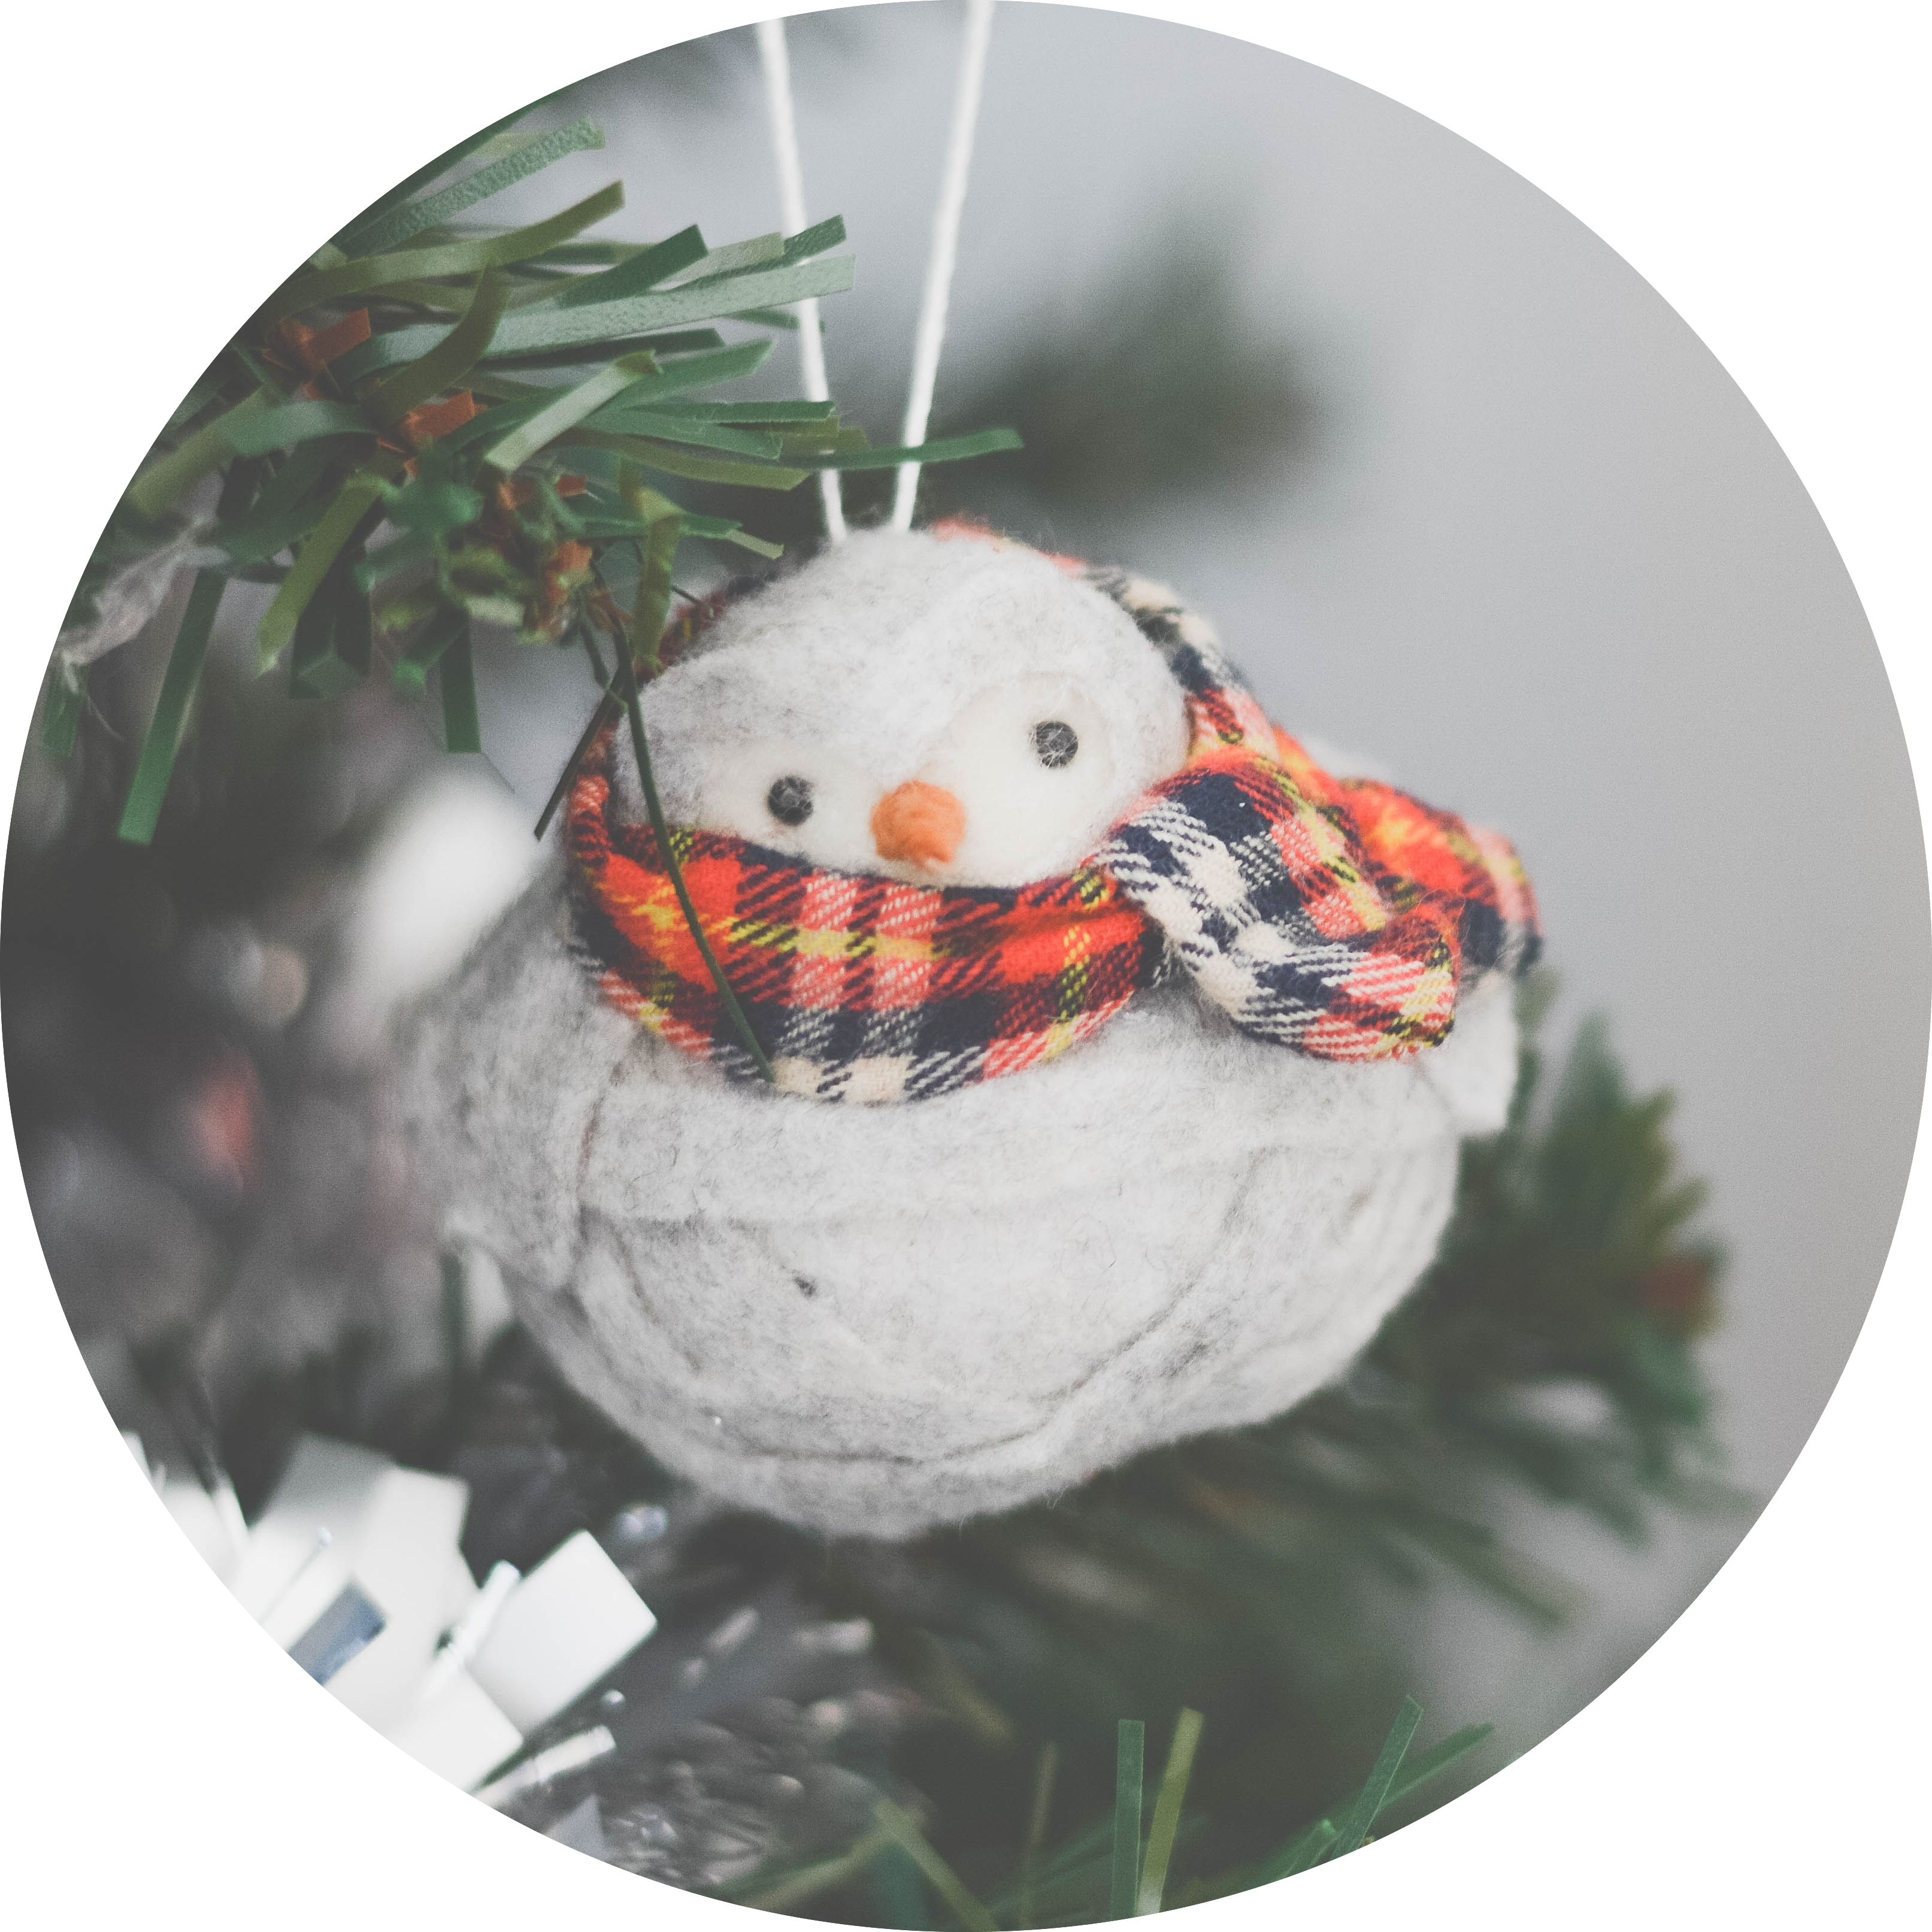 festive tips for retailers